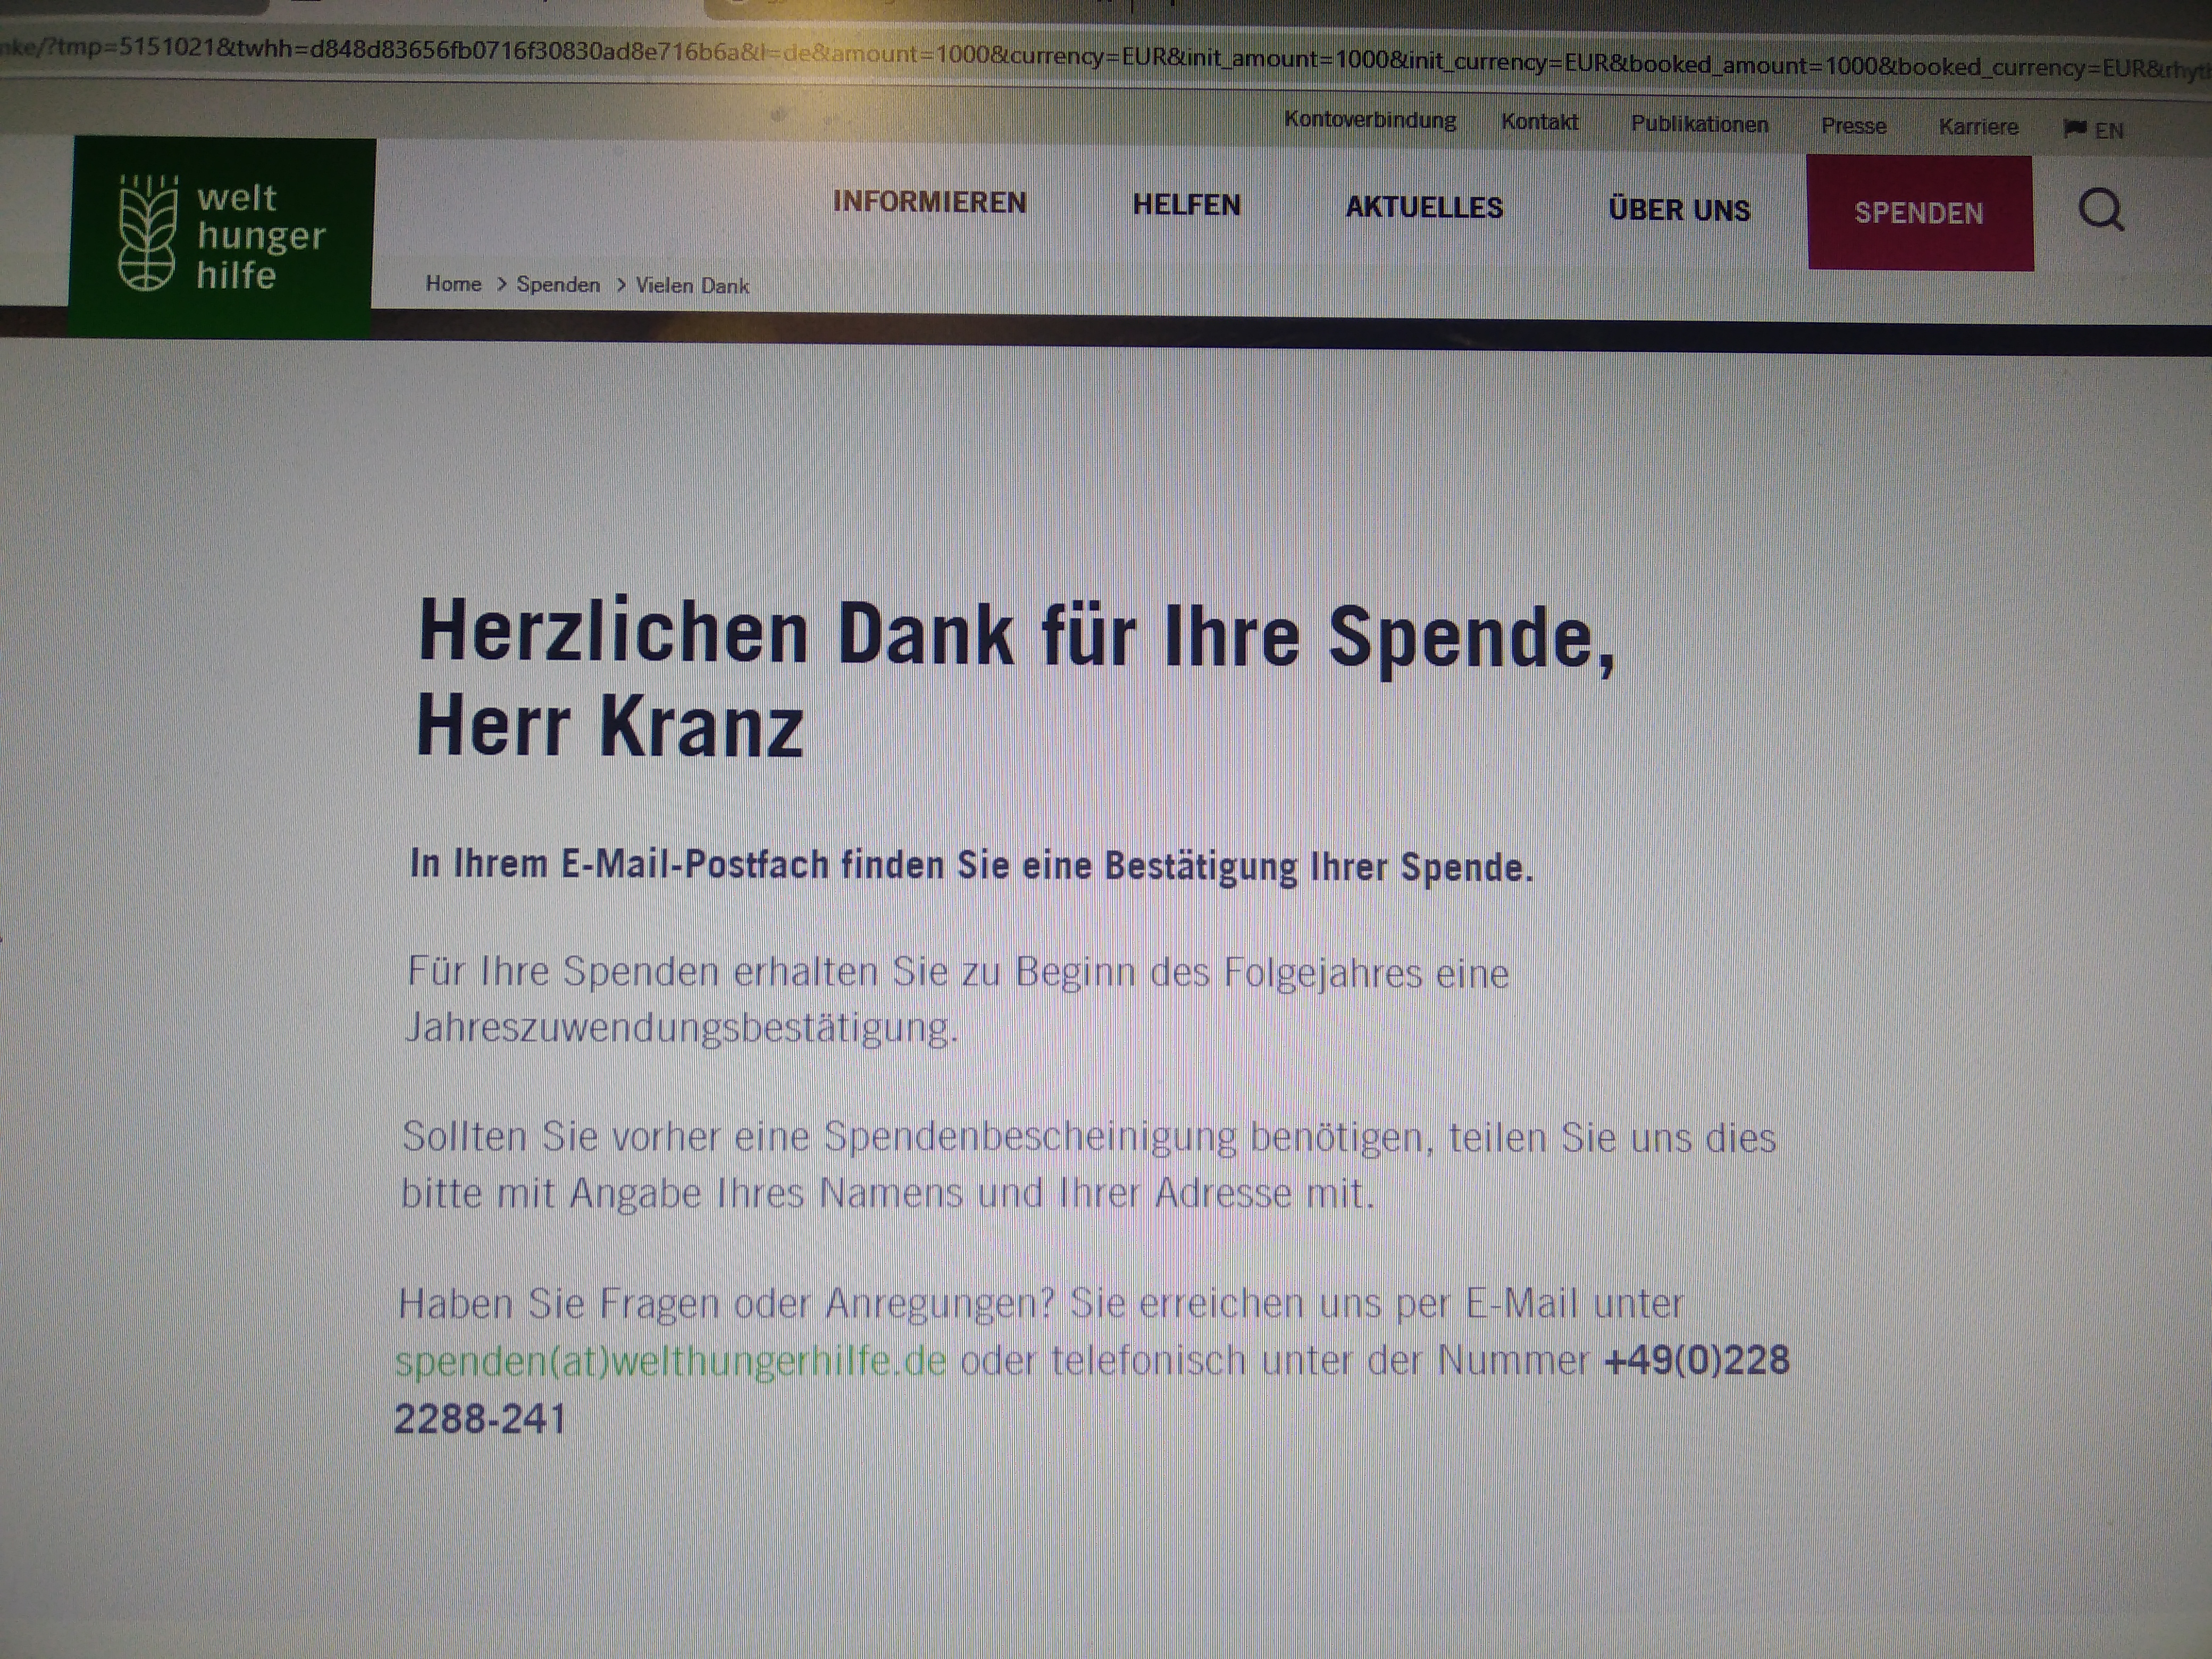 """<p id=""""afterless227"""">Eine Spende an die Welthungerhilfe! Damit niemand mehr Hung...</p><div id=""""aftermore227"""" style=""""display:none;""""><p>Eine Spende an die Welthungerhilfe! Damit niemand mehr Hungern muss!</p></div><a href=""""javascript:showMore('after', 227)"""" id=""""afterlink227"""">Mehr...</a><br>"""